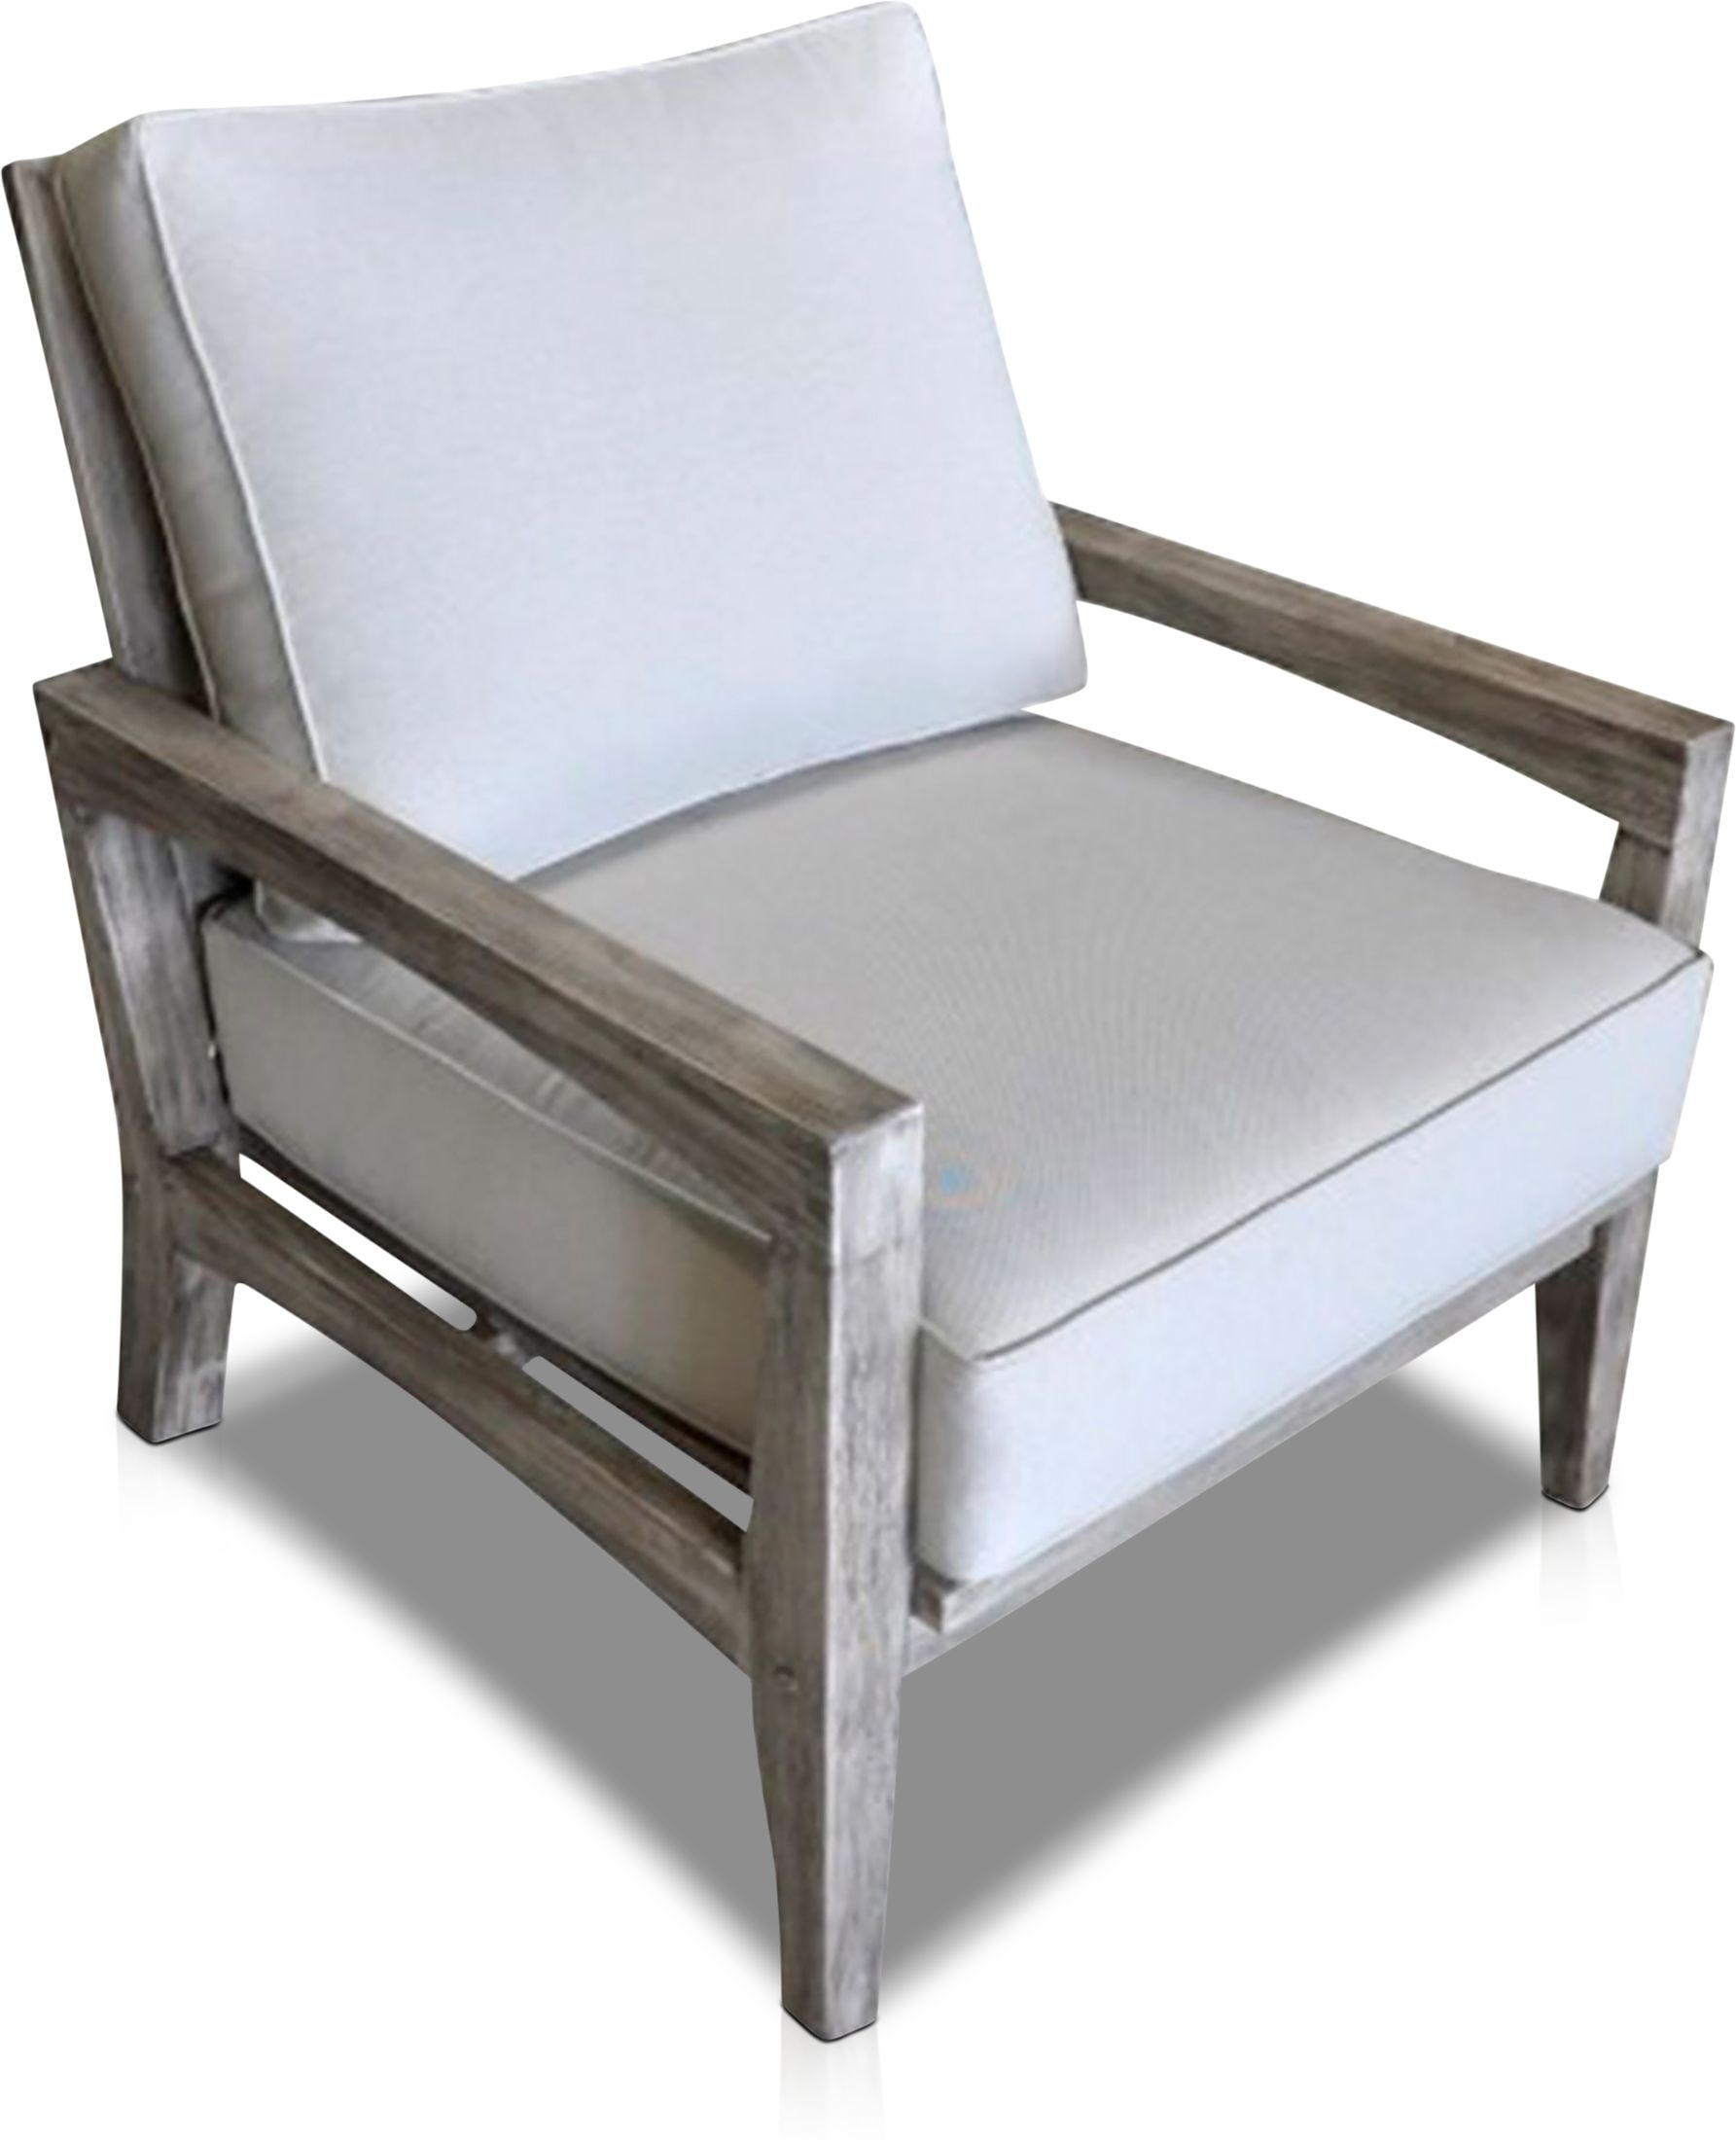 Outdoor Furniture - Marshall Outdoor Chair